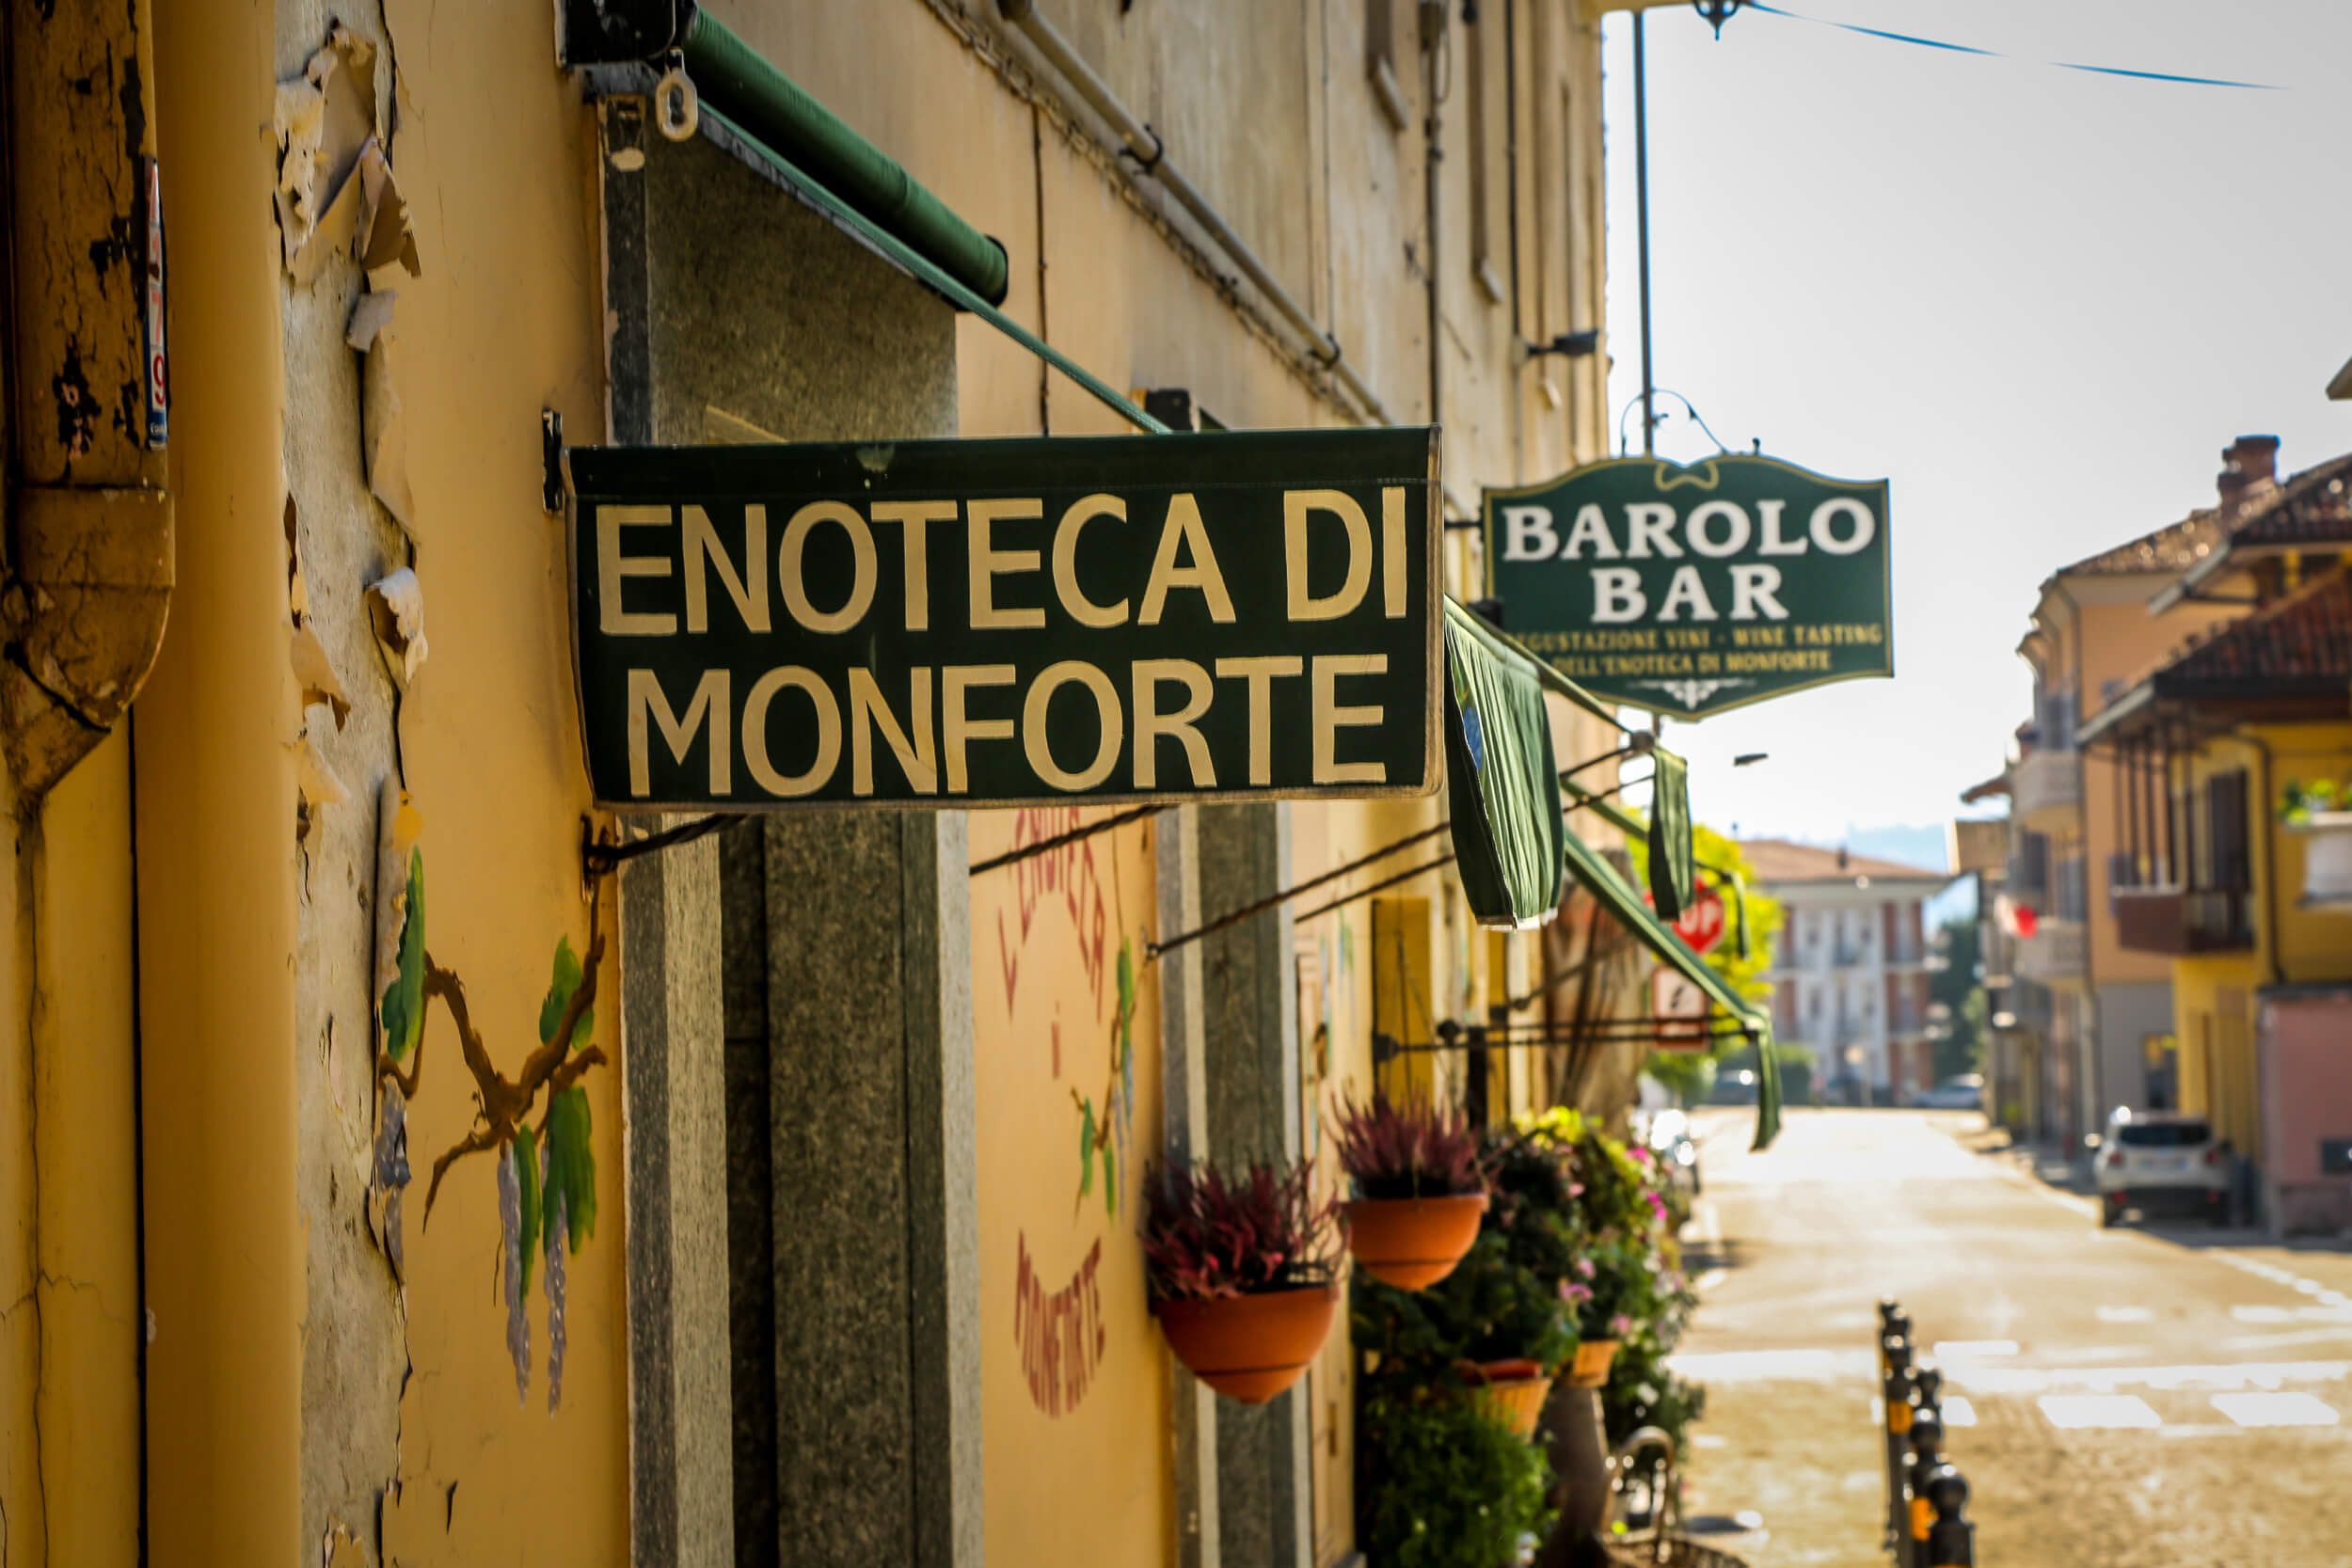 Barolo Bar enoteca sign